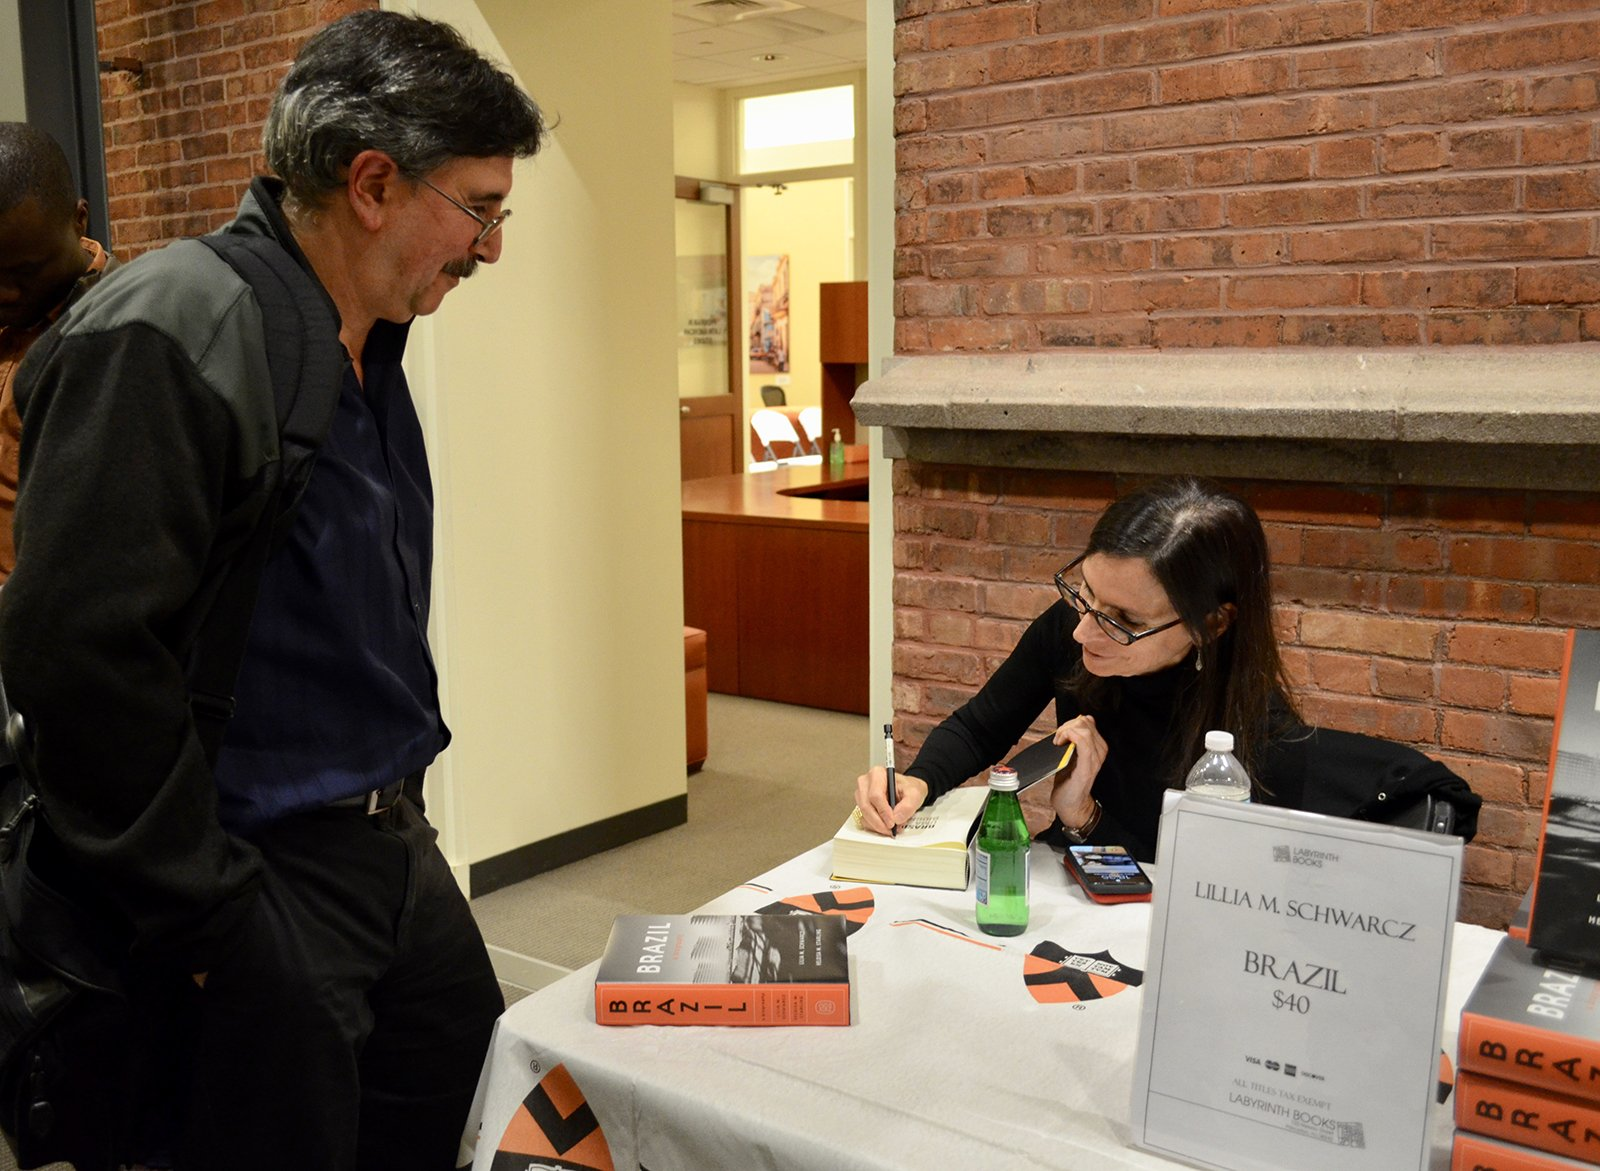 lilia Schwarcz signs copies of her book, Brazil: A Biography.